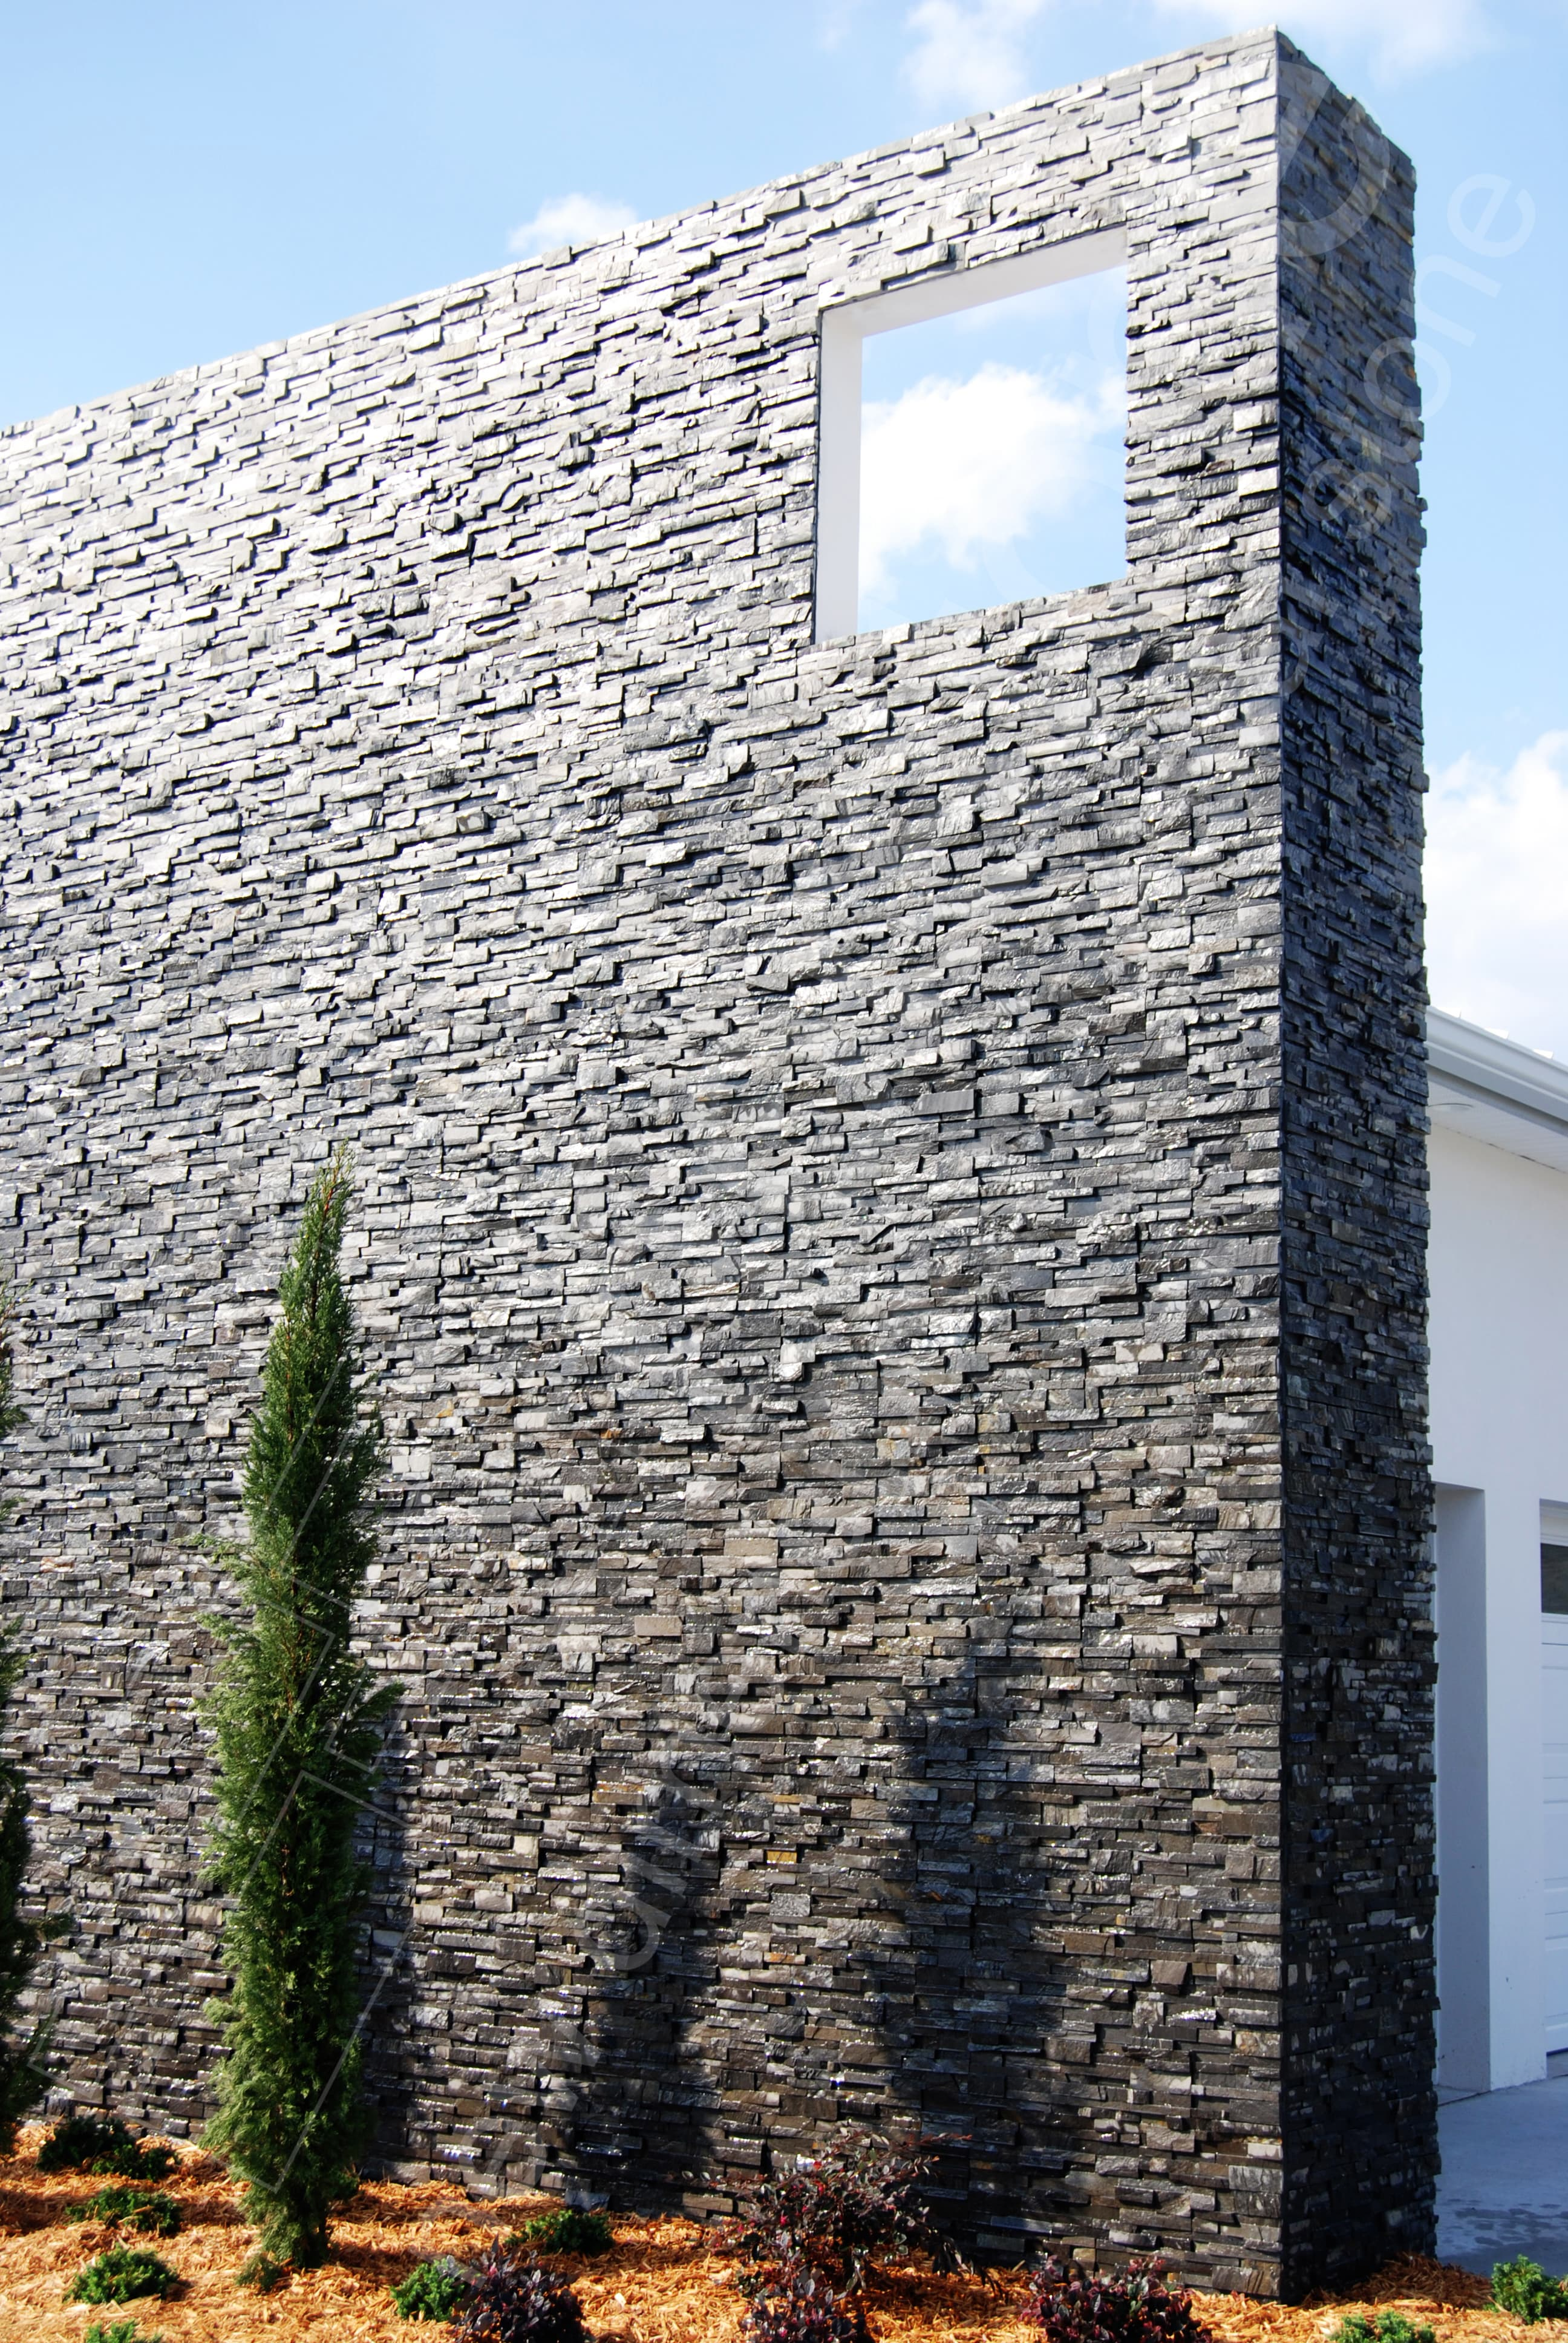 Norstone Charcoal Standard thine stone veneer panels on an exterior feature wall project in Florida